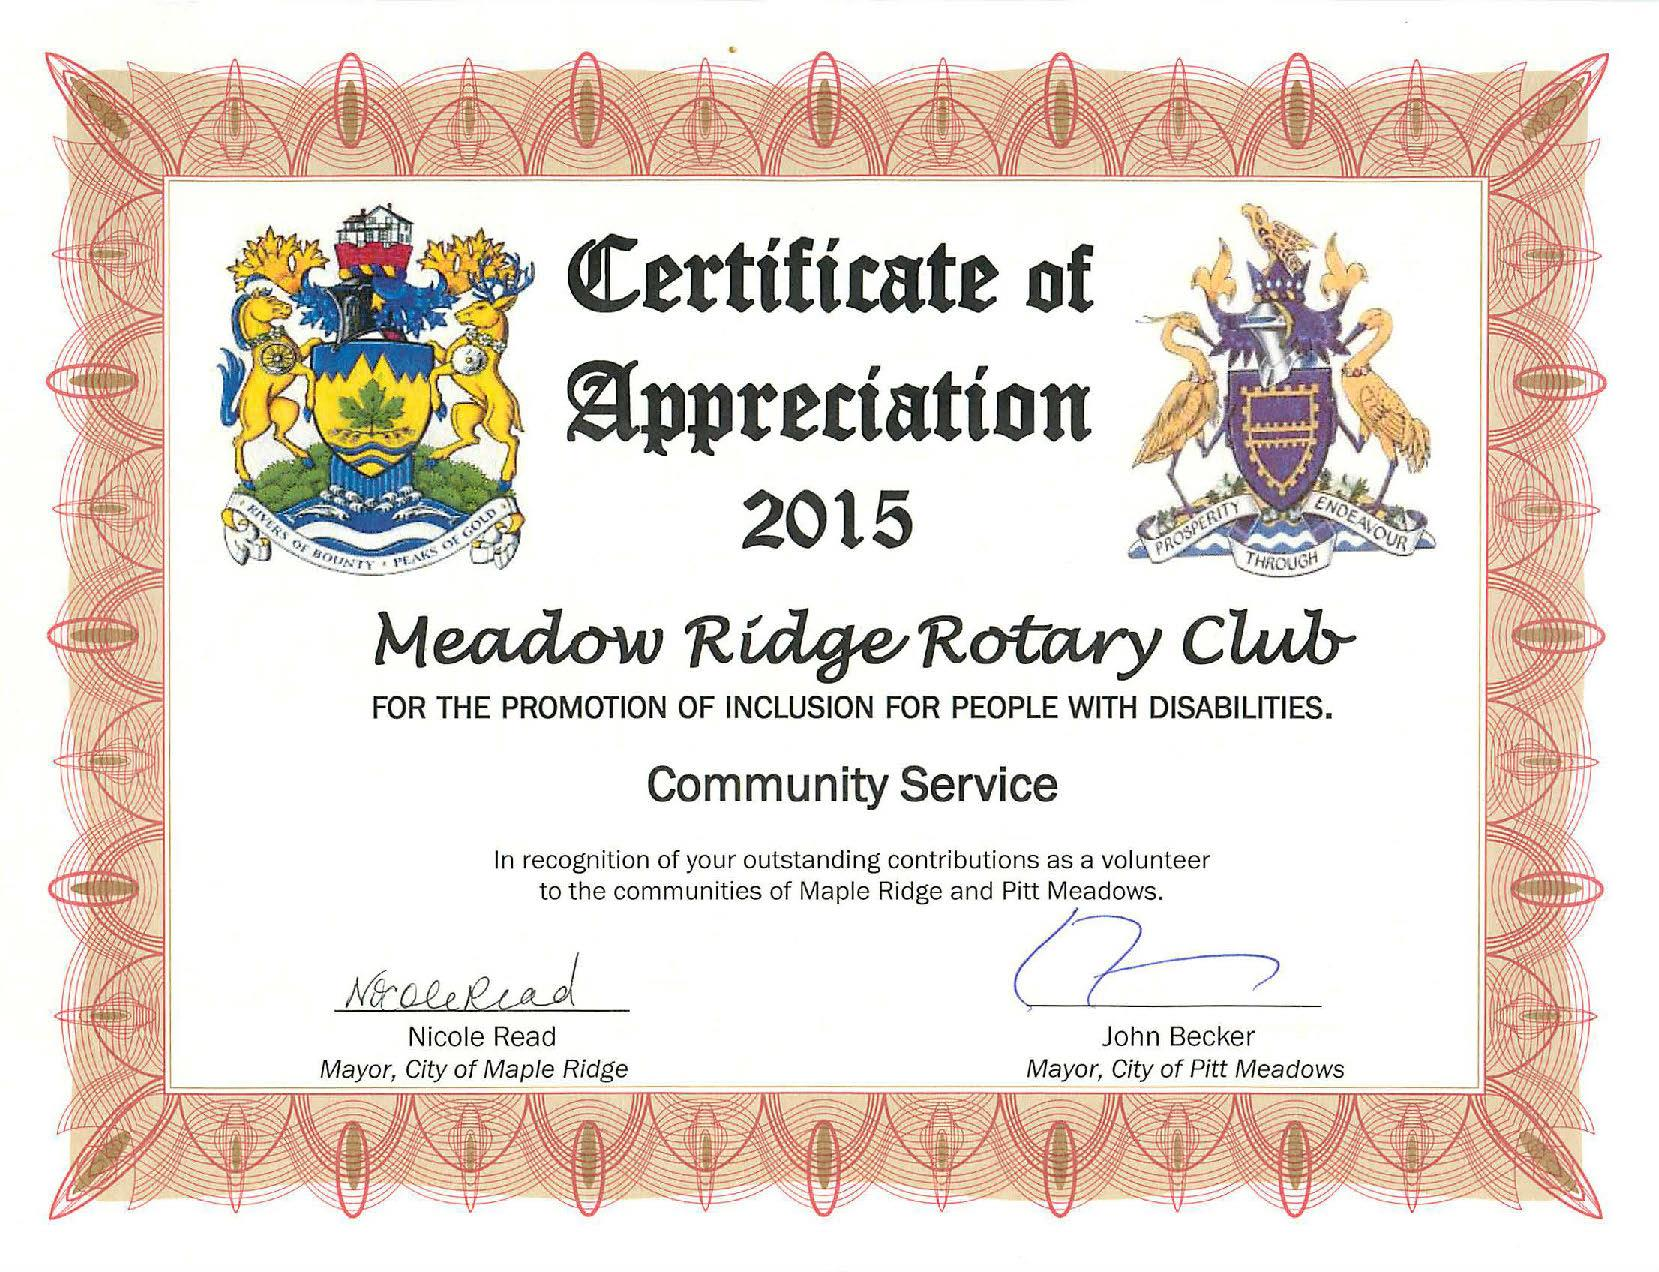 Home page rotary club of meadow ridge for Rotary certificate of appreciation template